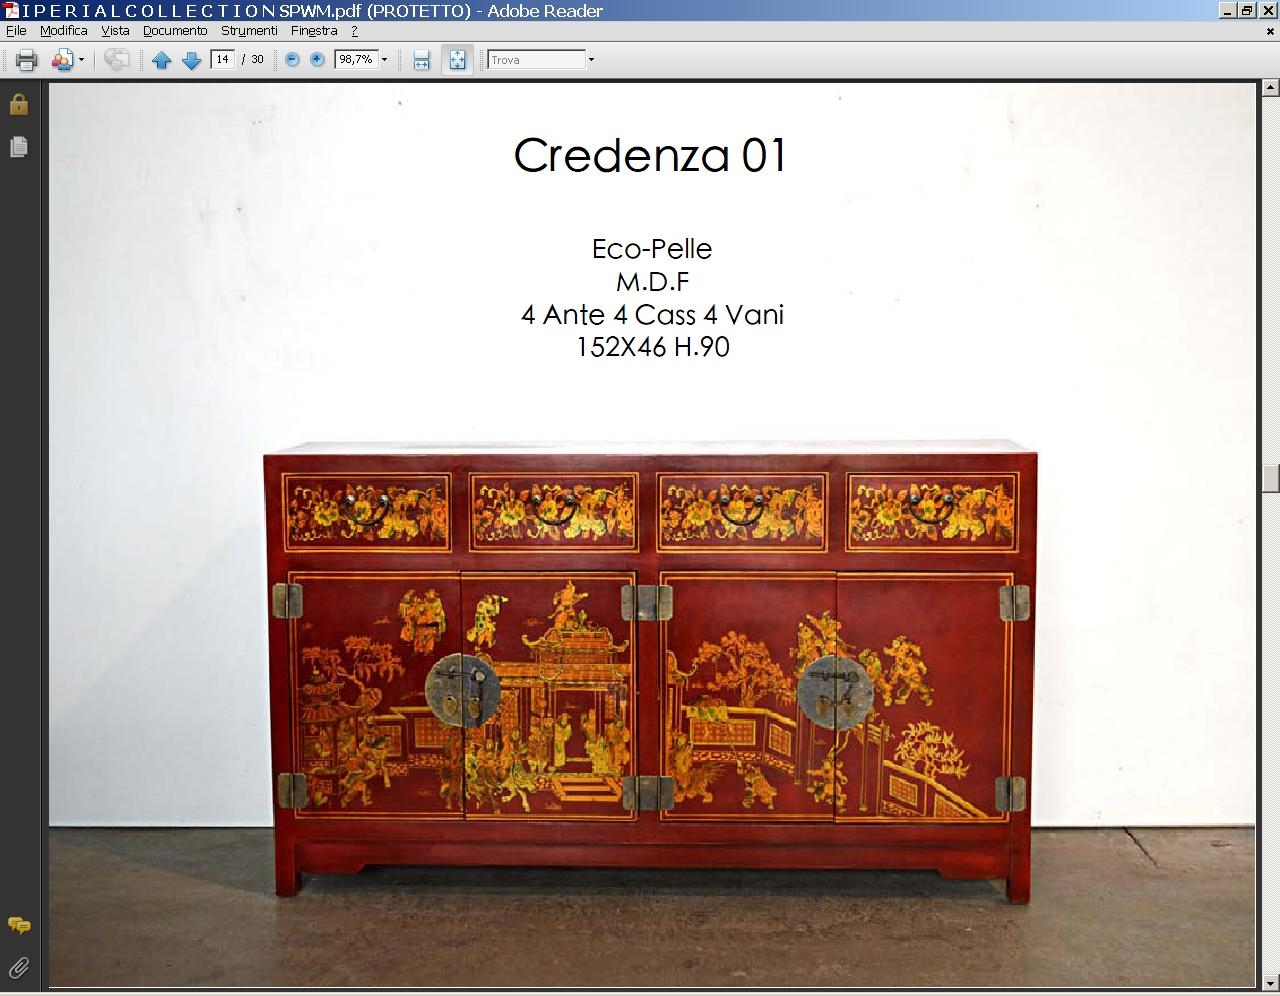 CREDENZA IMPERIAL MONGOLIA IN PELLE